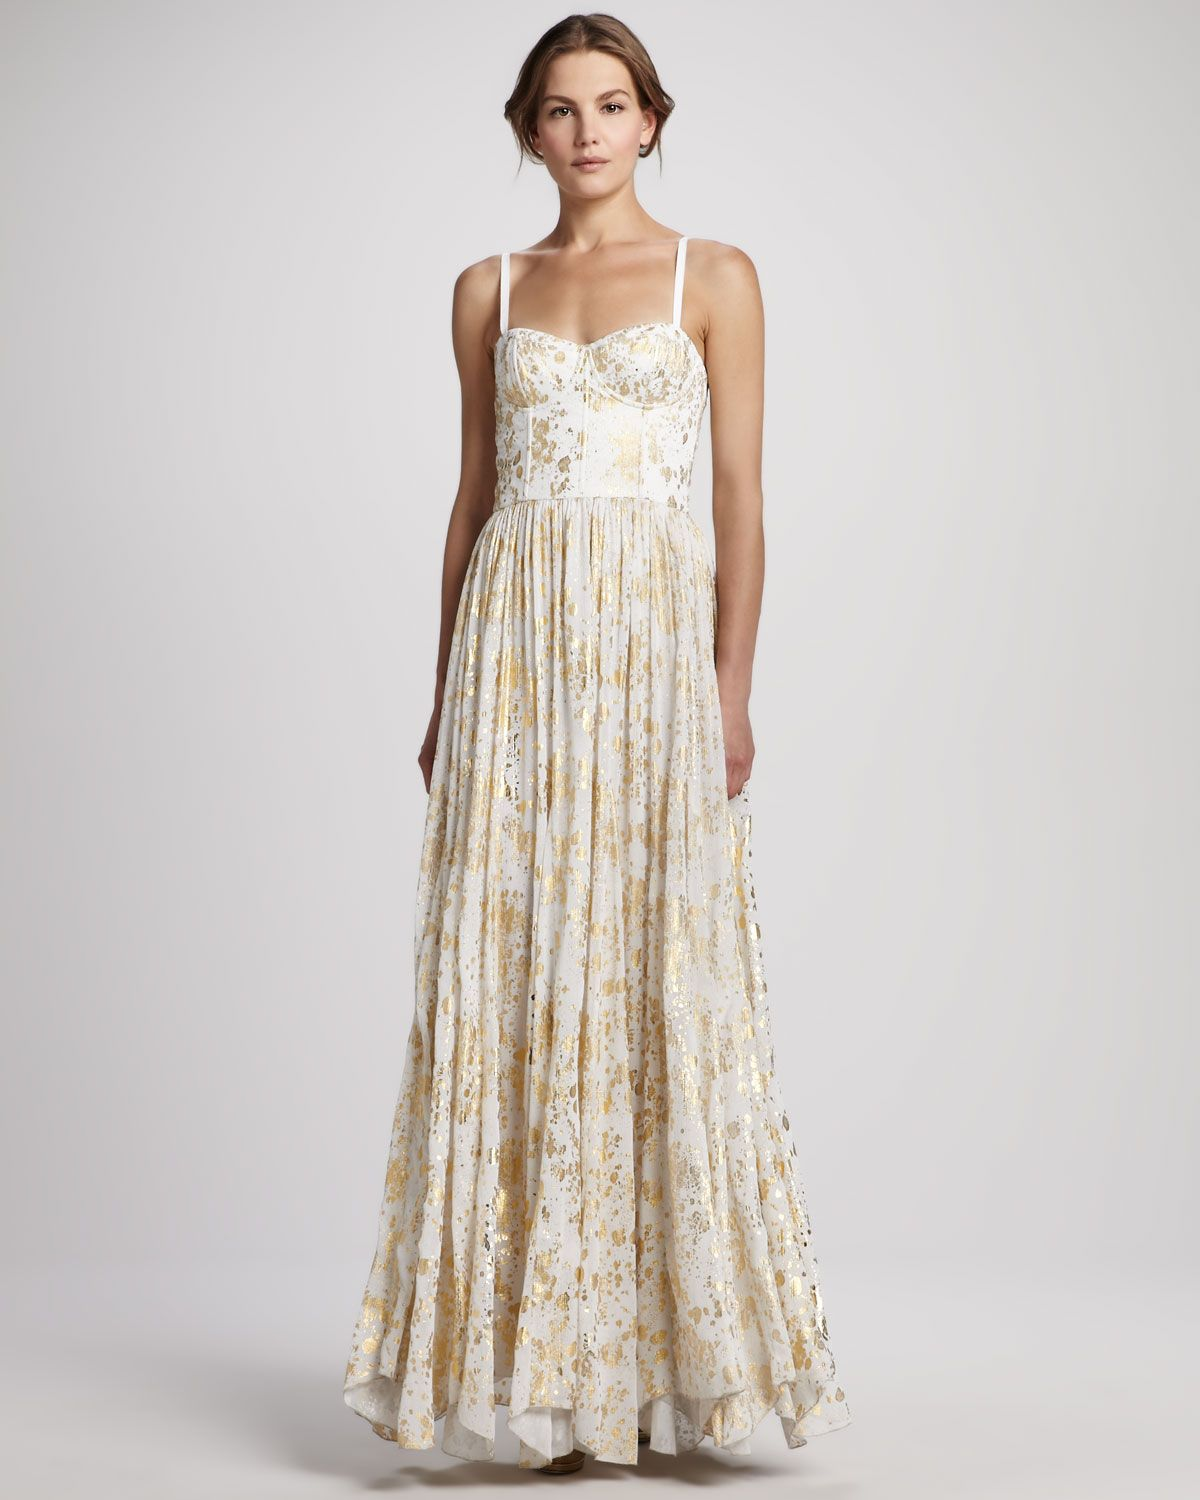 Alice + Olivia Yarra Bustier Maxi Dress (in white/gold) (great date ...